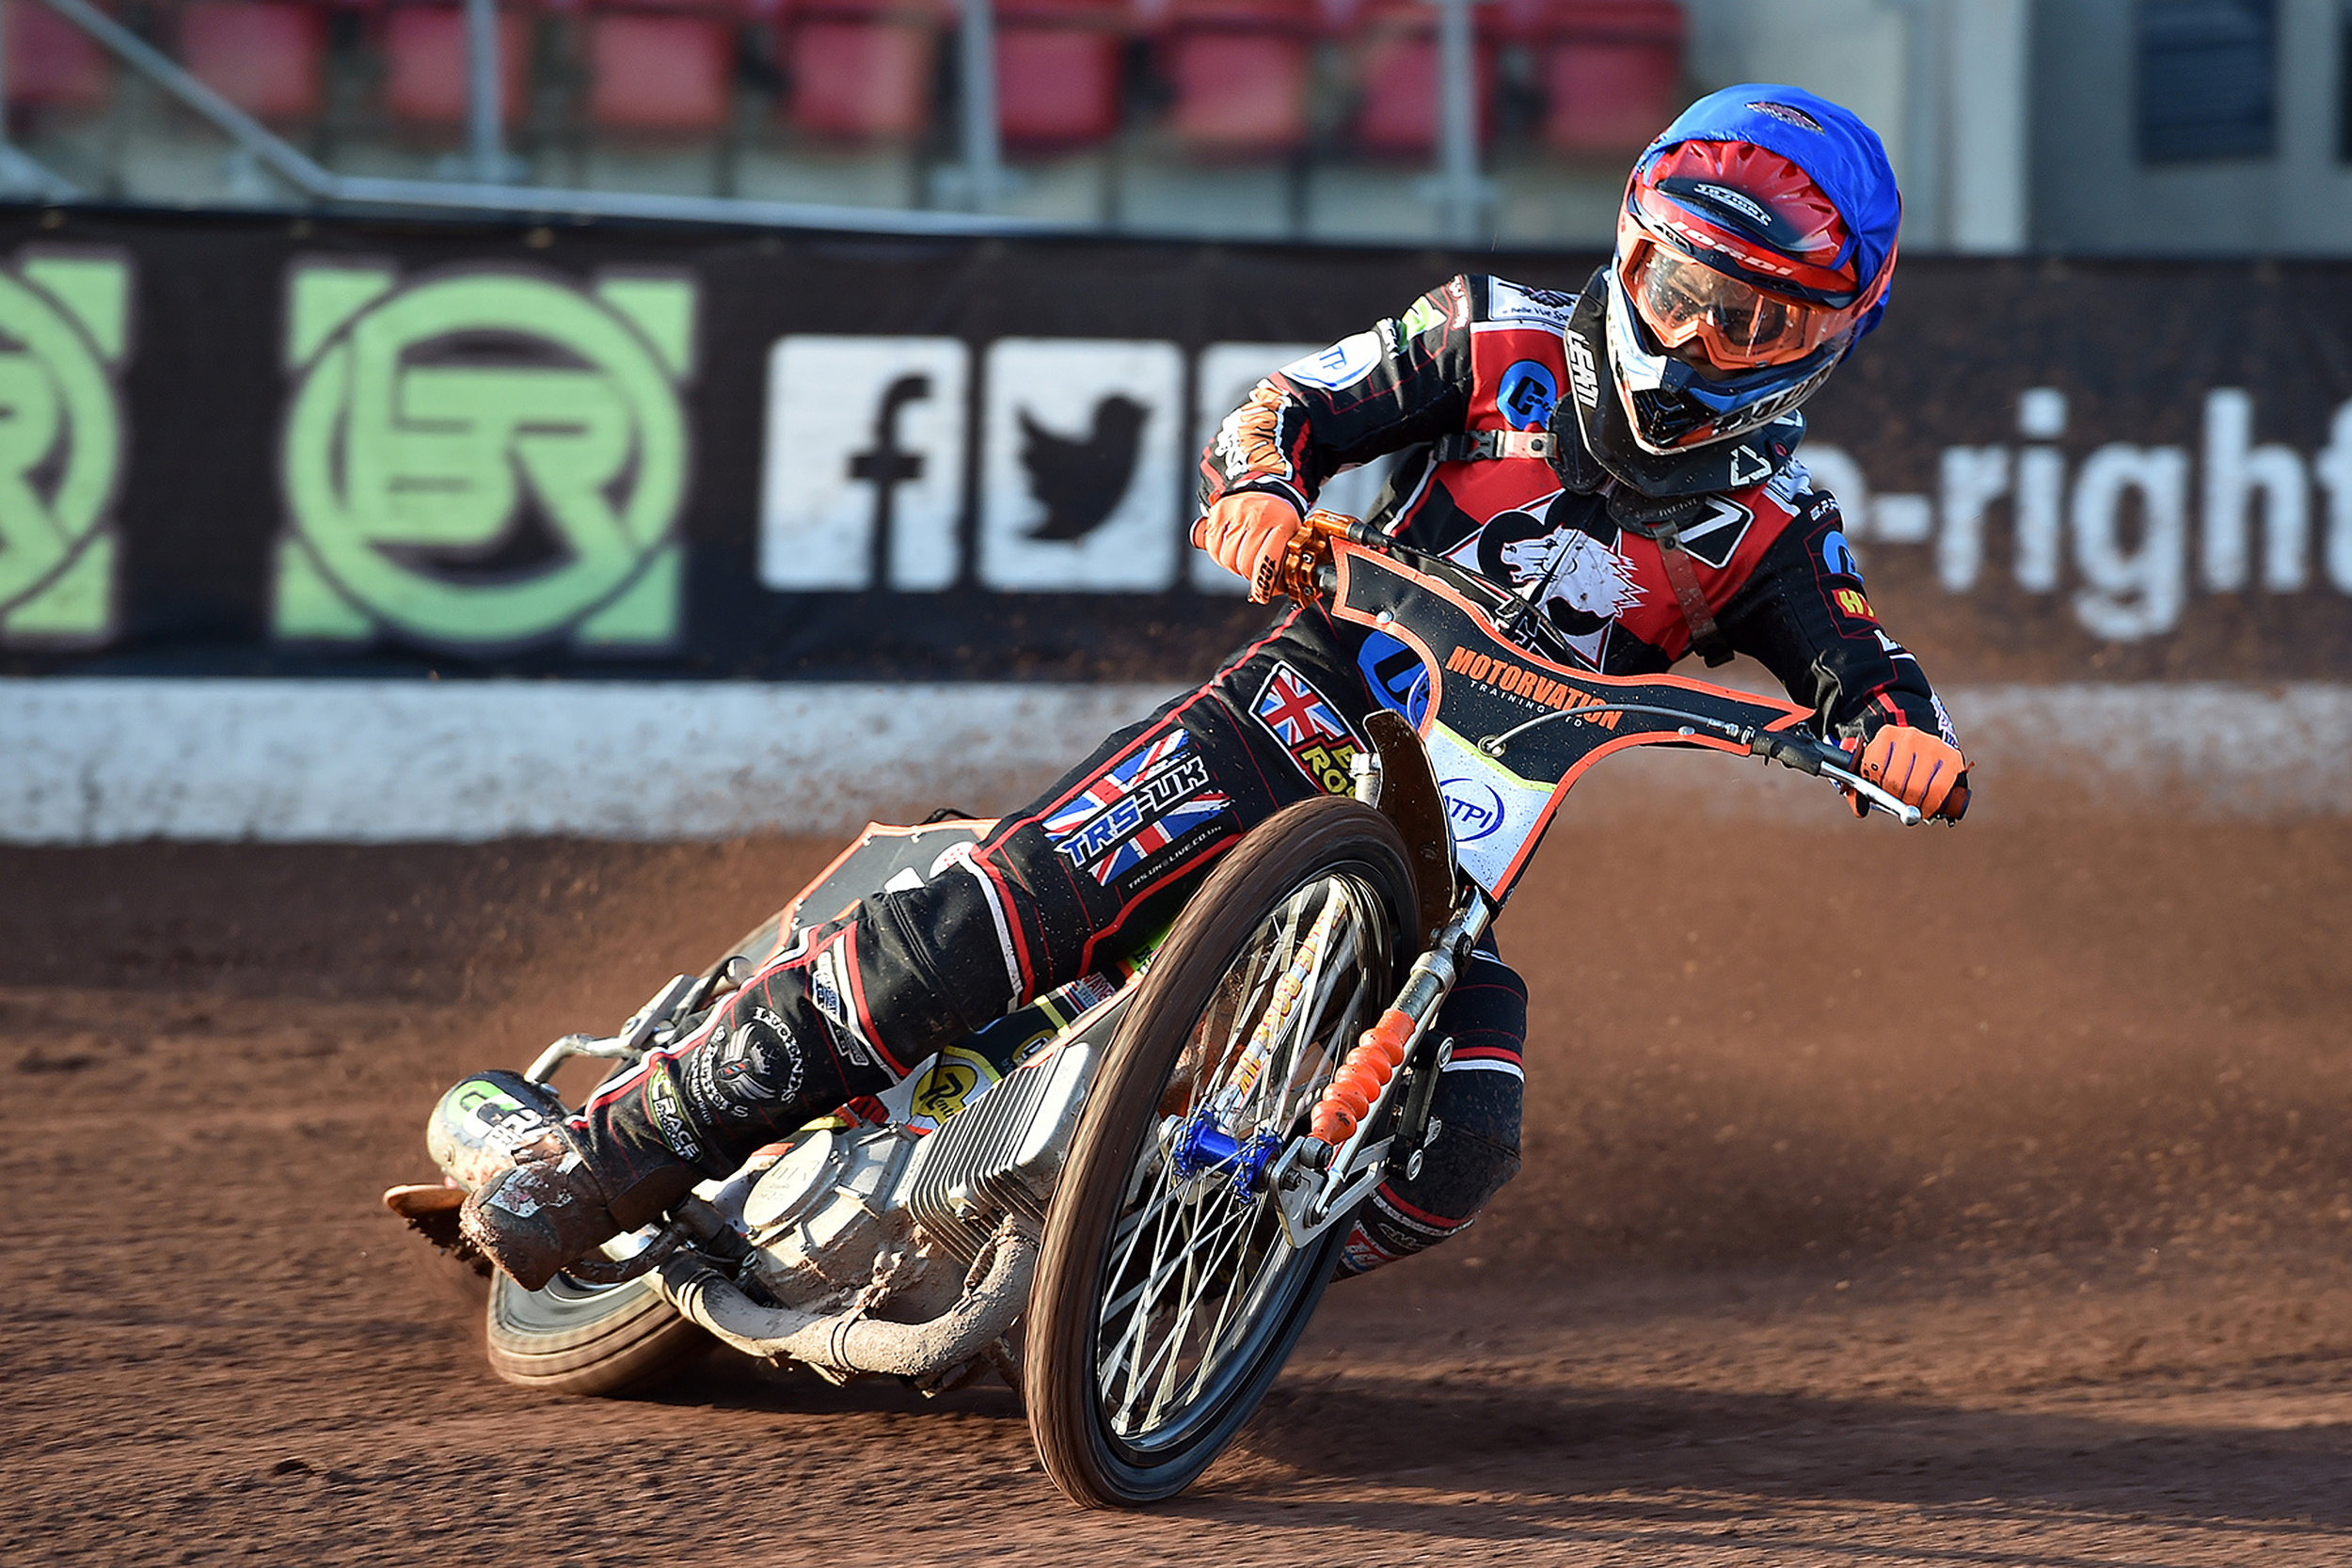 Jordan Palin moves up to No.1 for Belle Vue's clash with Mildenhall on an average of 9.45 from 2.00